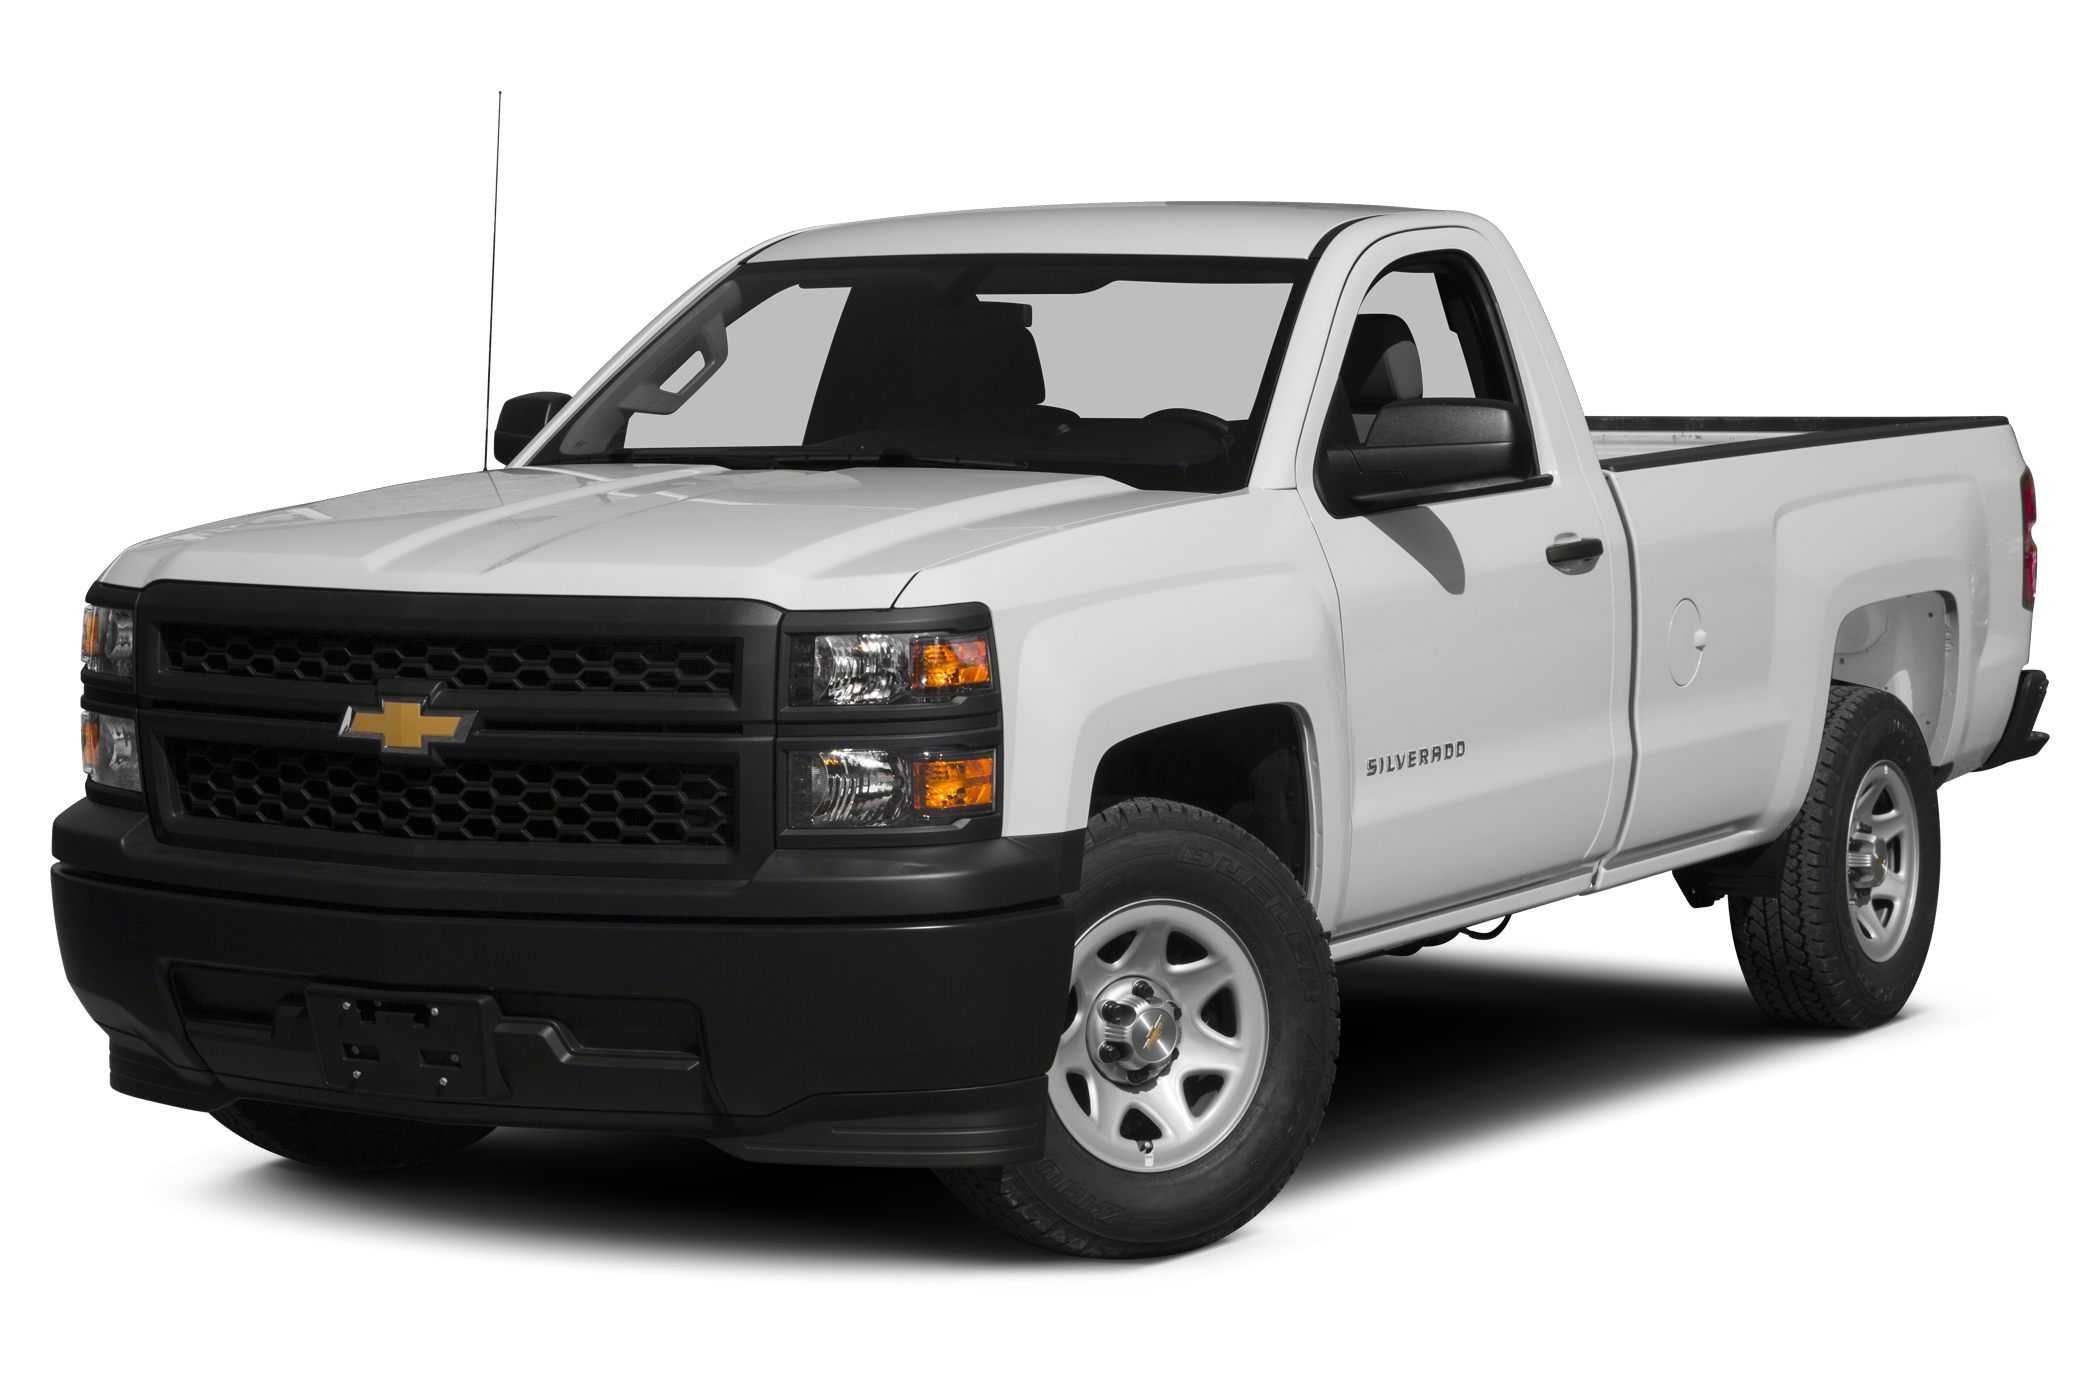 2015 Chevrolet Silverado 1500 2LT Extended Cab Pickup for sale in Aberdeen for $39,290 with 2 miles.